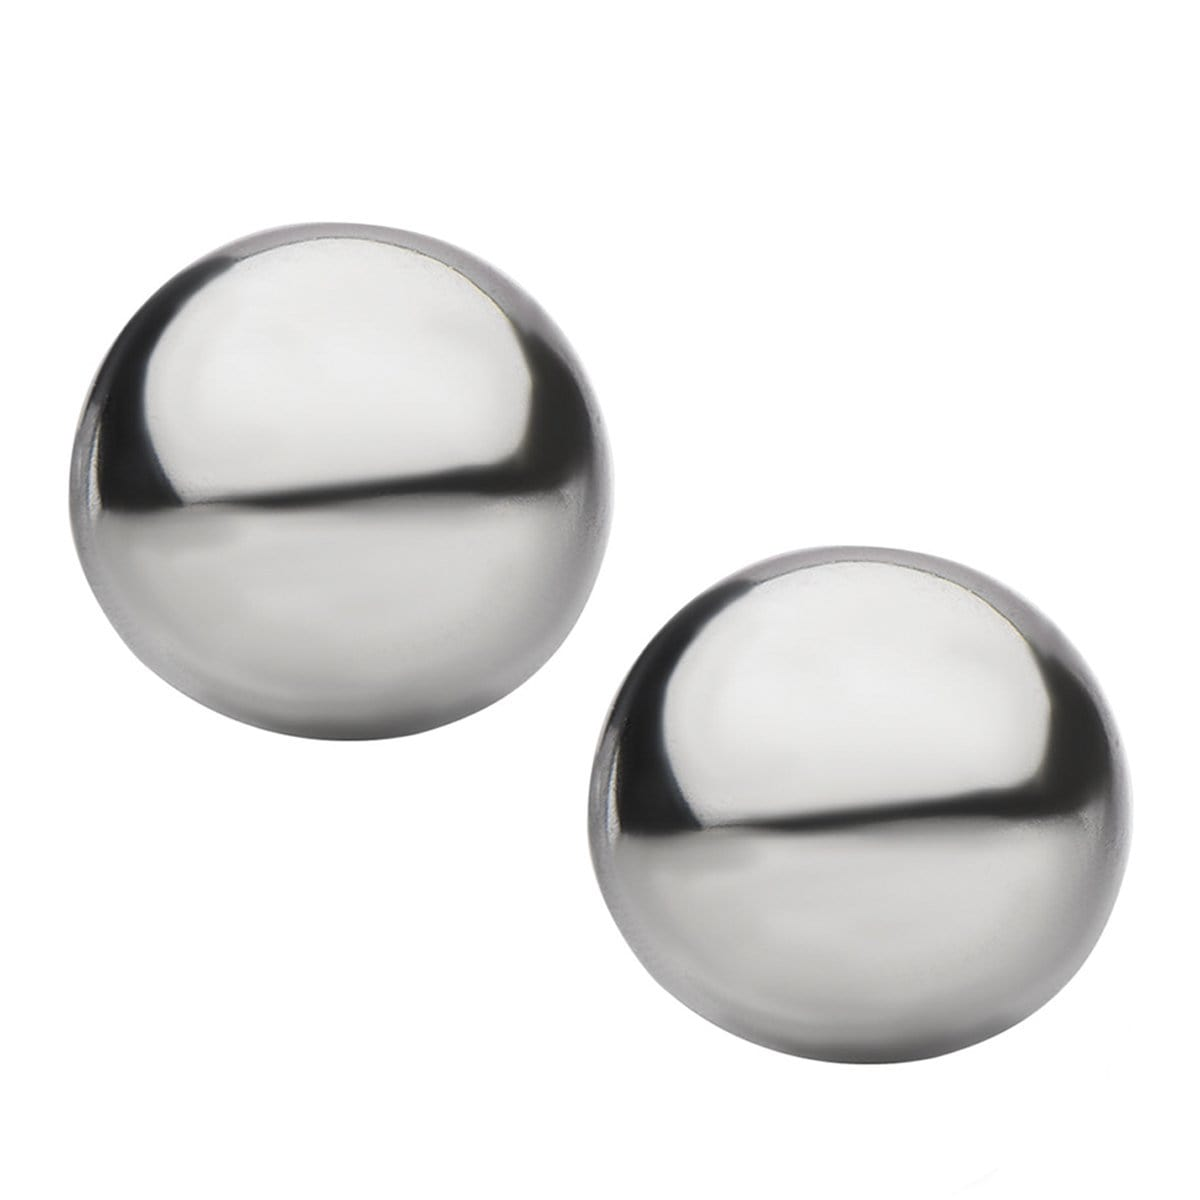 Silver Stainless Steel Small Round Dome Studs